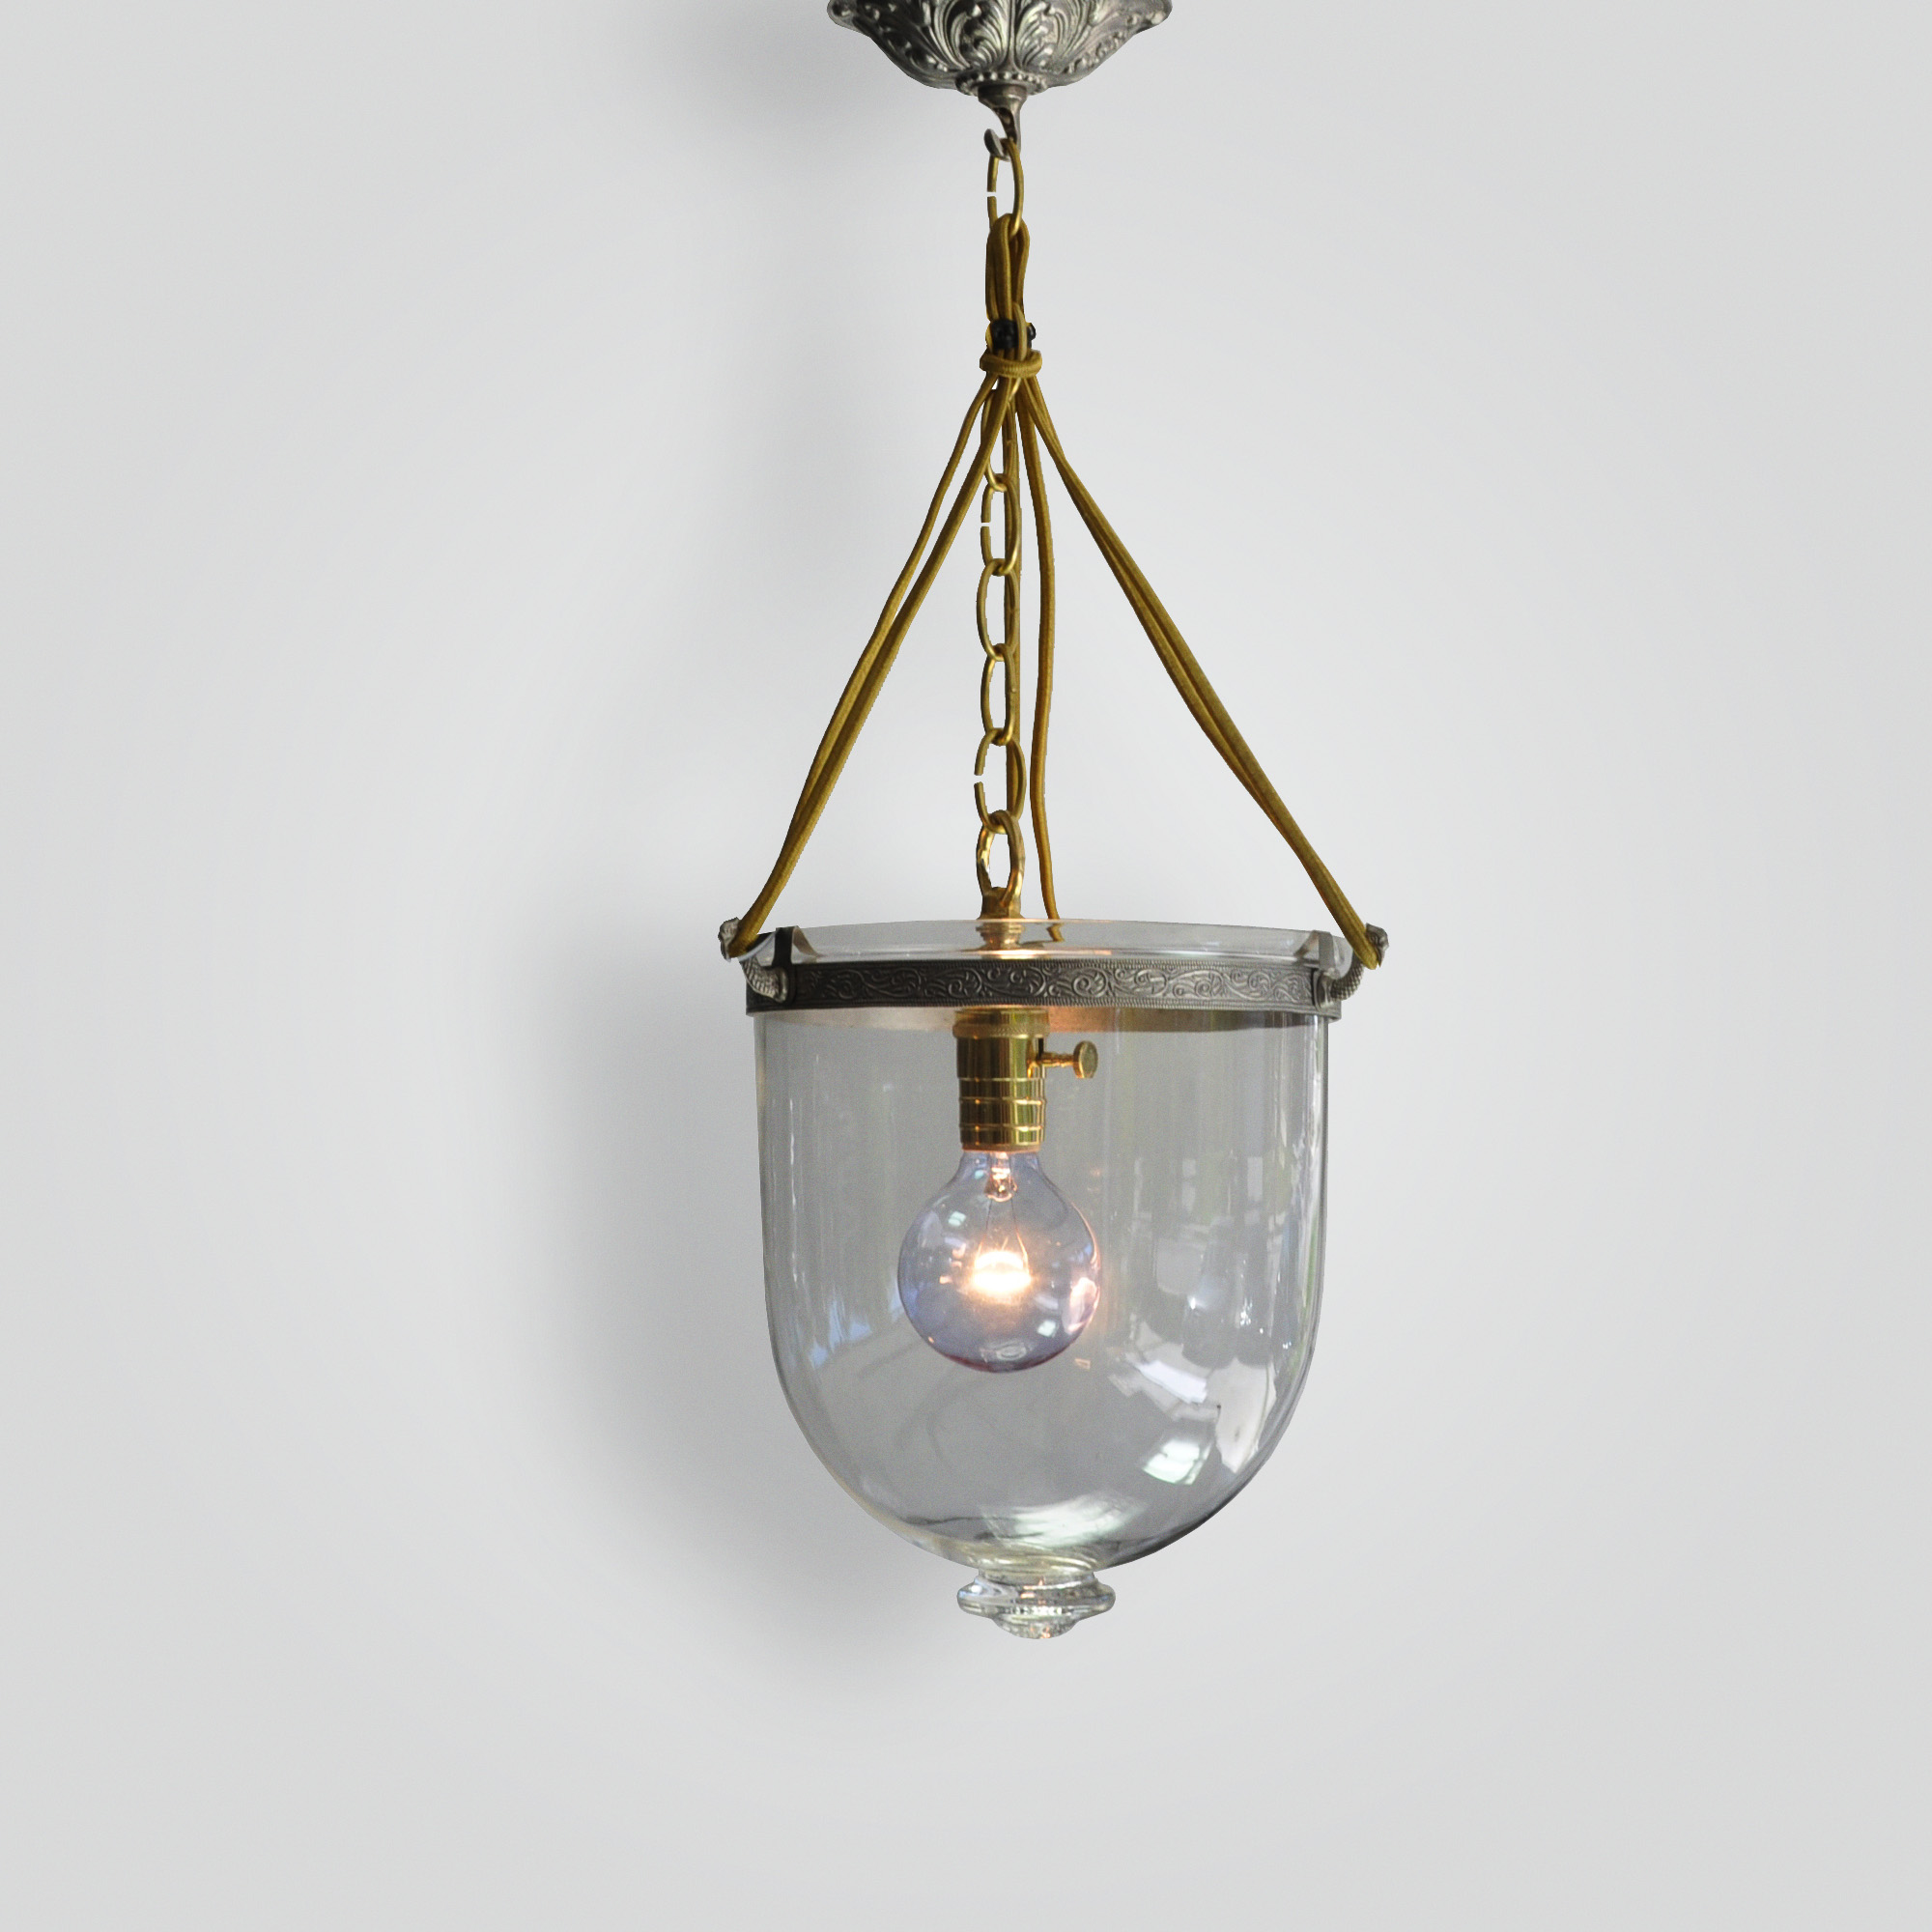 7012-mb1-st-sh-glass-bell-jar-eclectic – ADG Lighting Collection